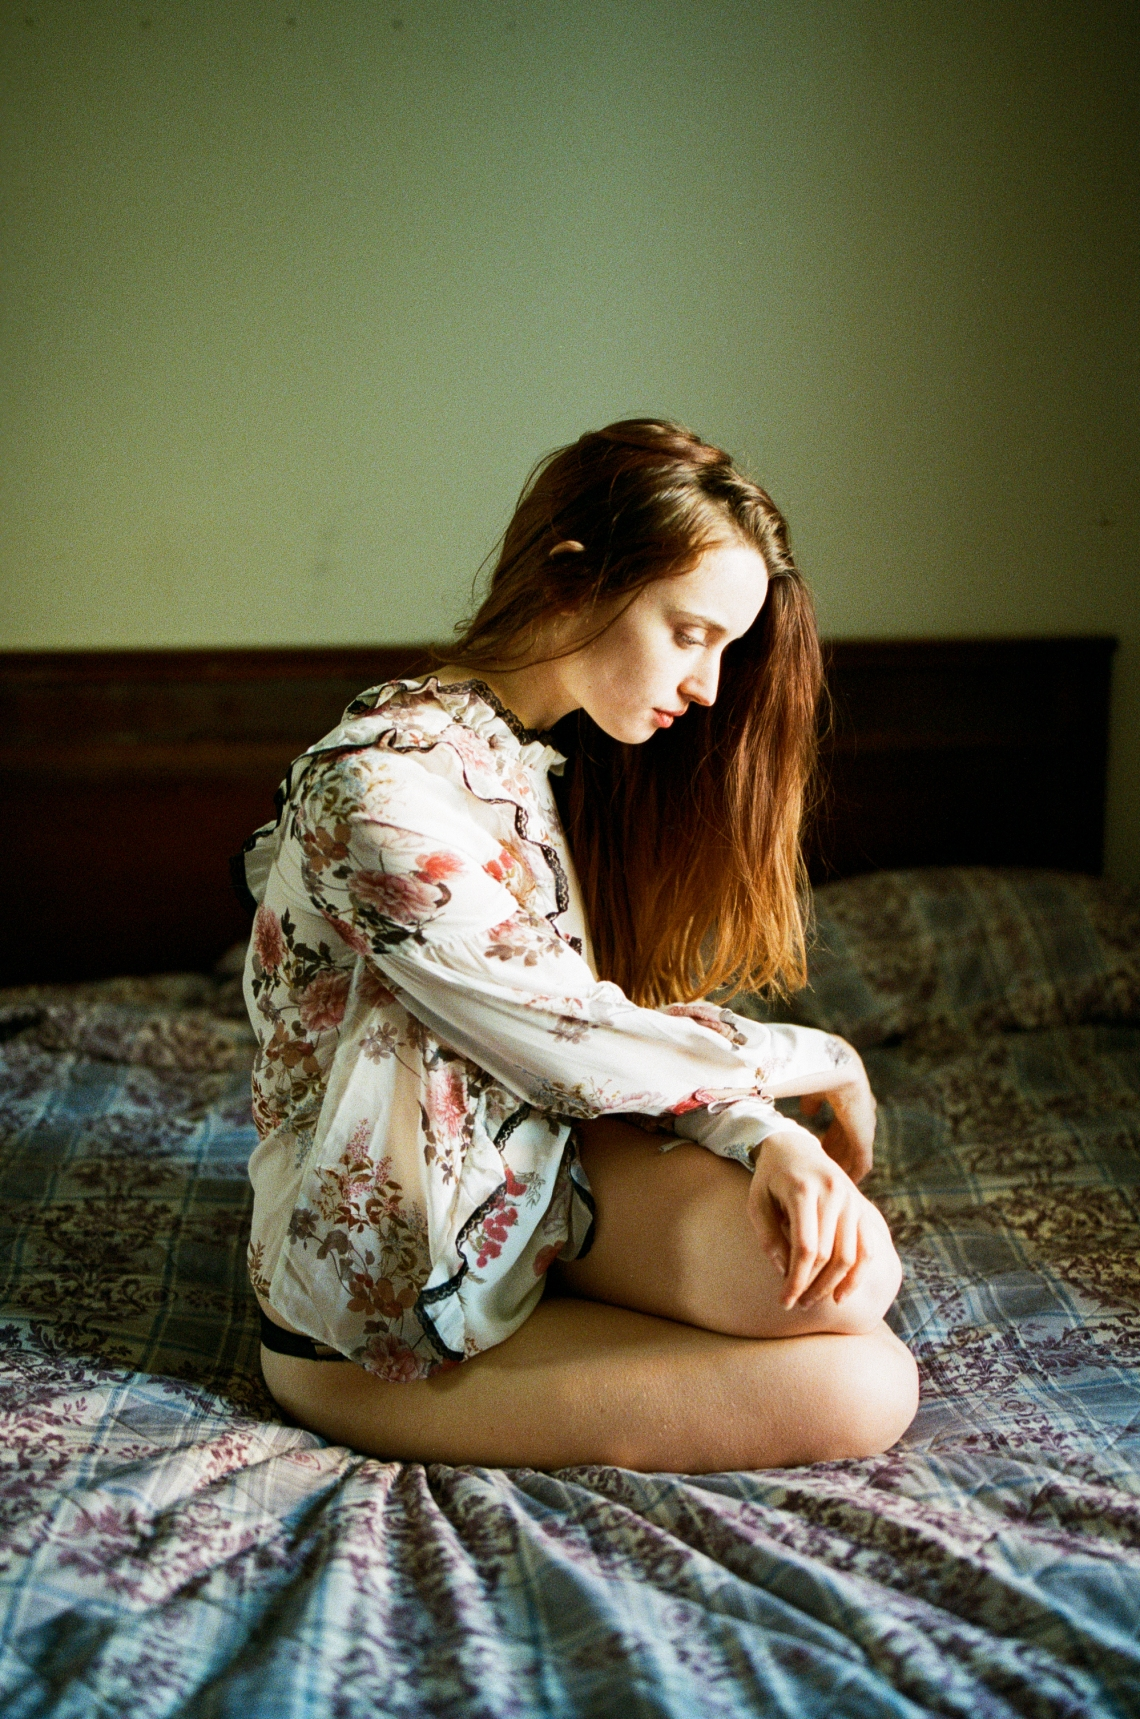 woman sitting on bed looking thoughtful